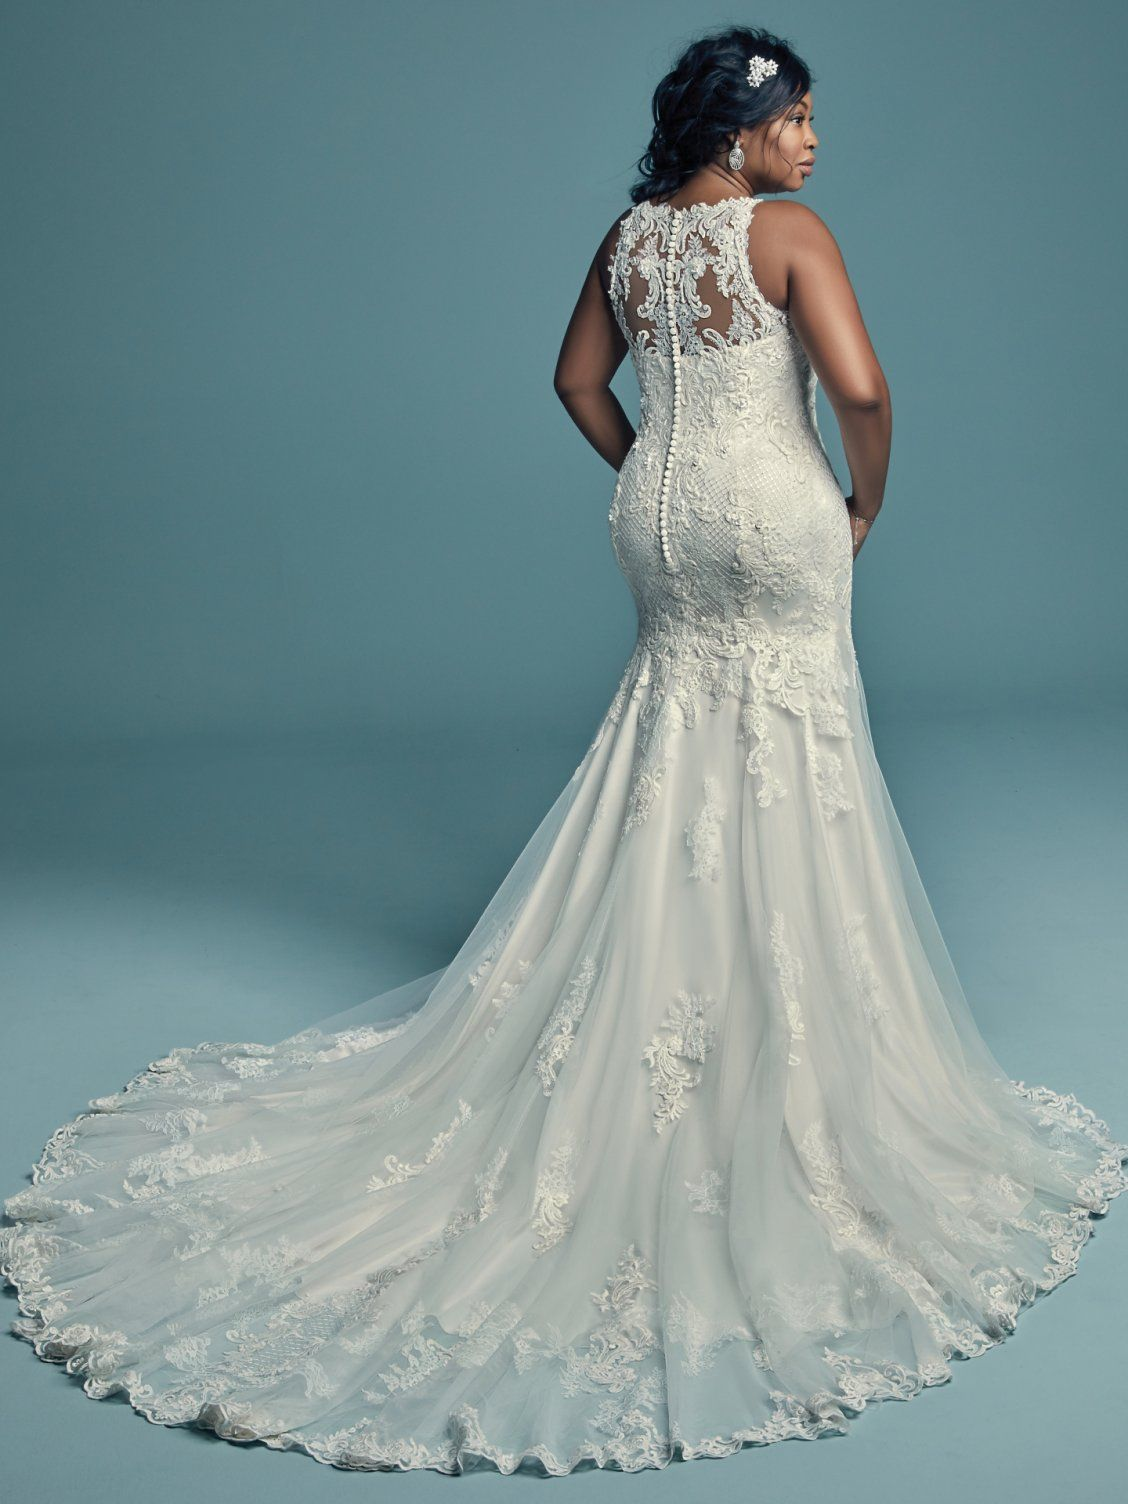 Maggie Sottero Wedding Dresses | Tulle lace, Beaded lace and Maggie ...